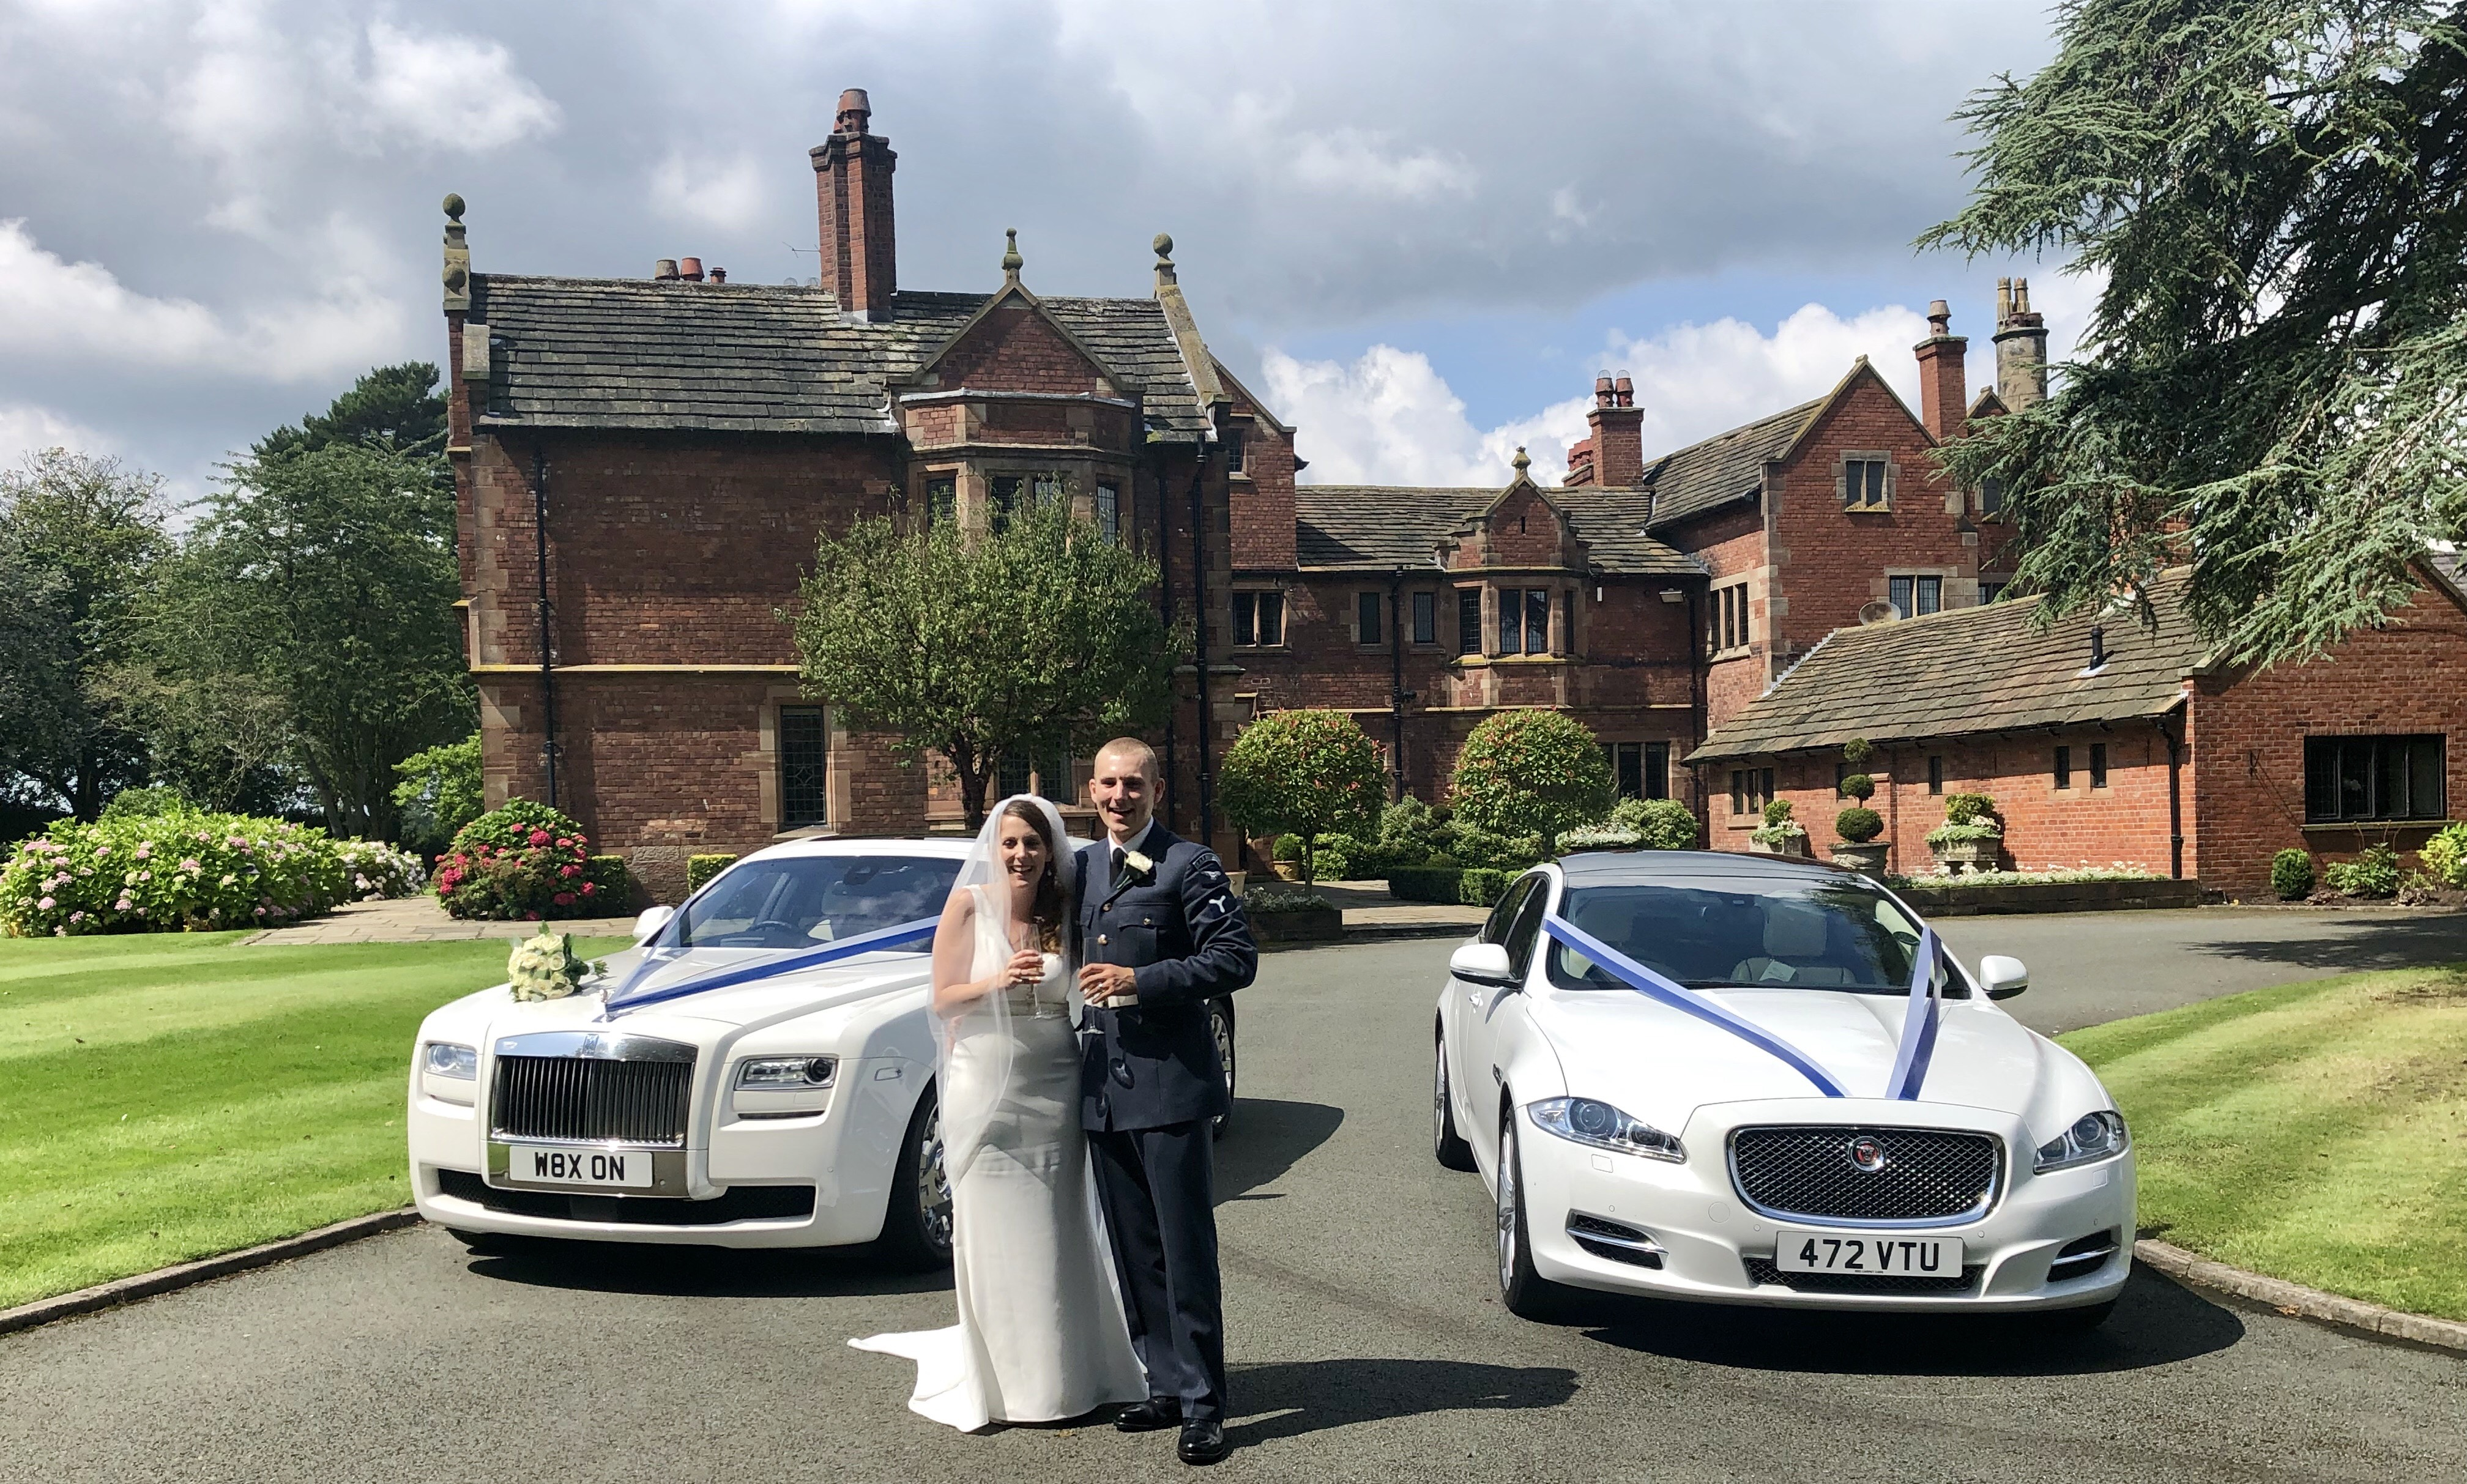 Red Carpet Cars | Luxury Wedding Cars | Couple by Rolls Royce and Jaguar